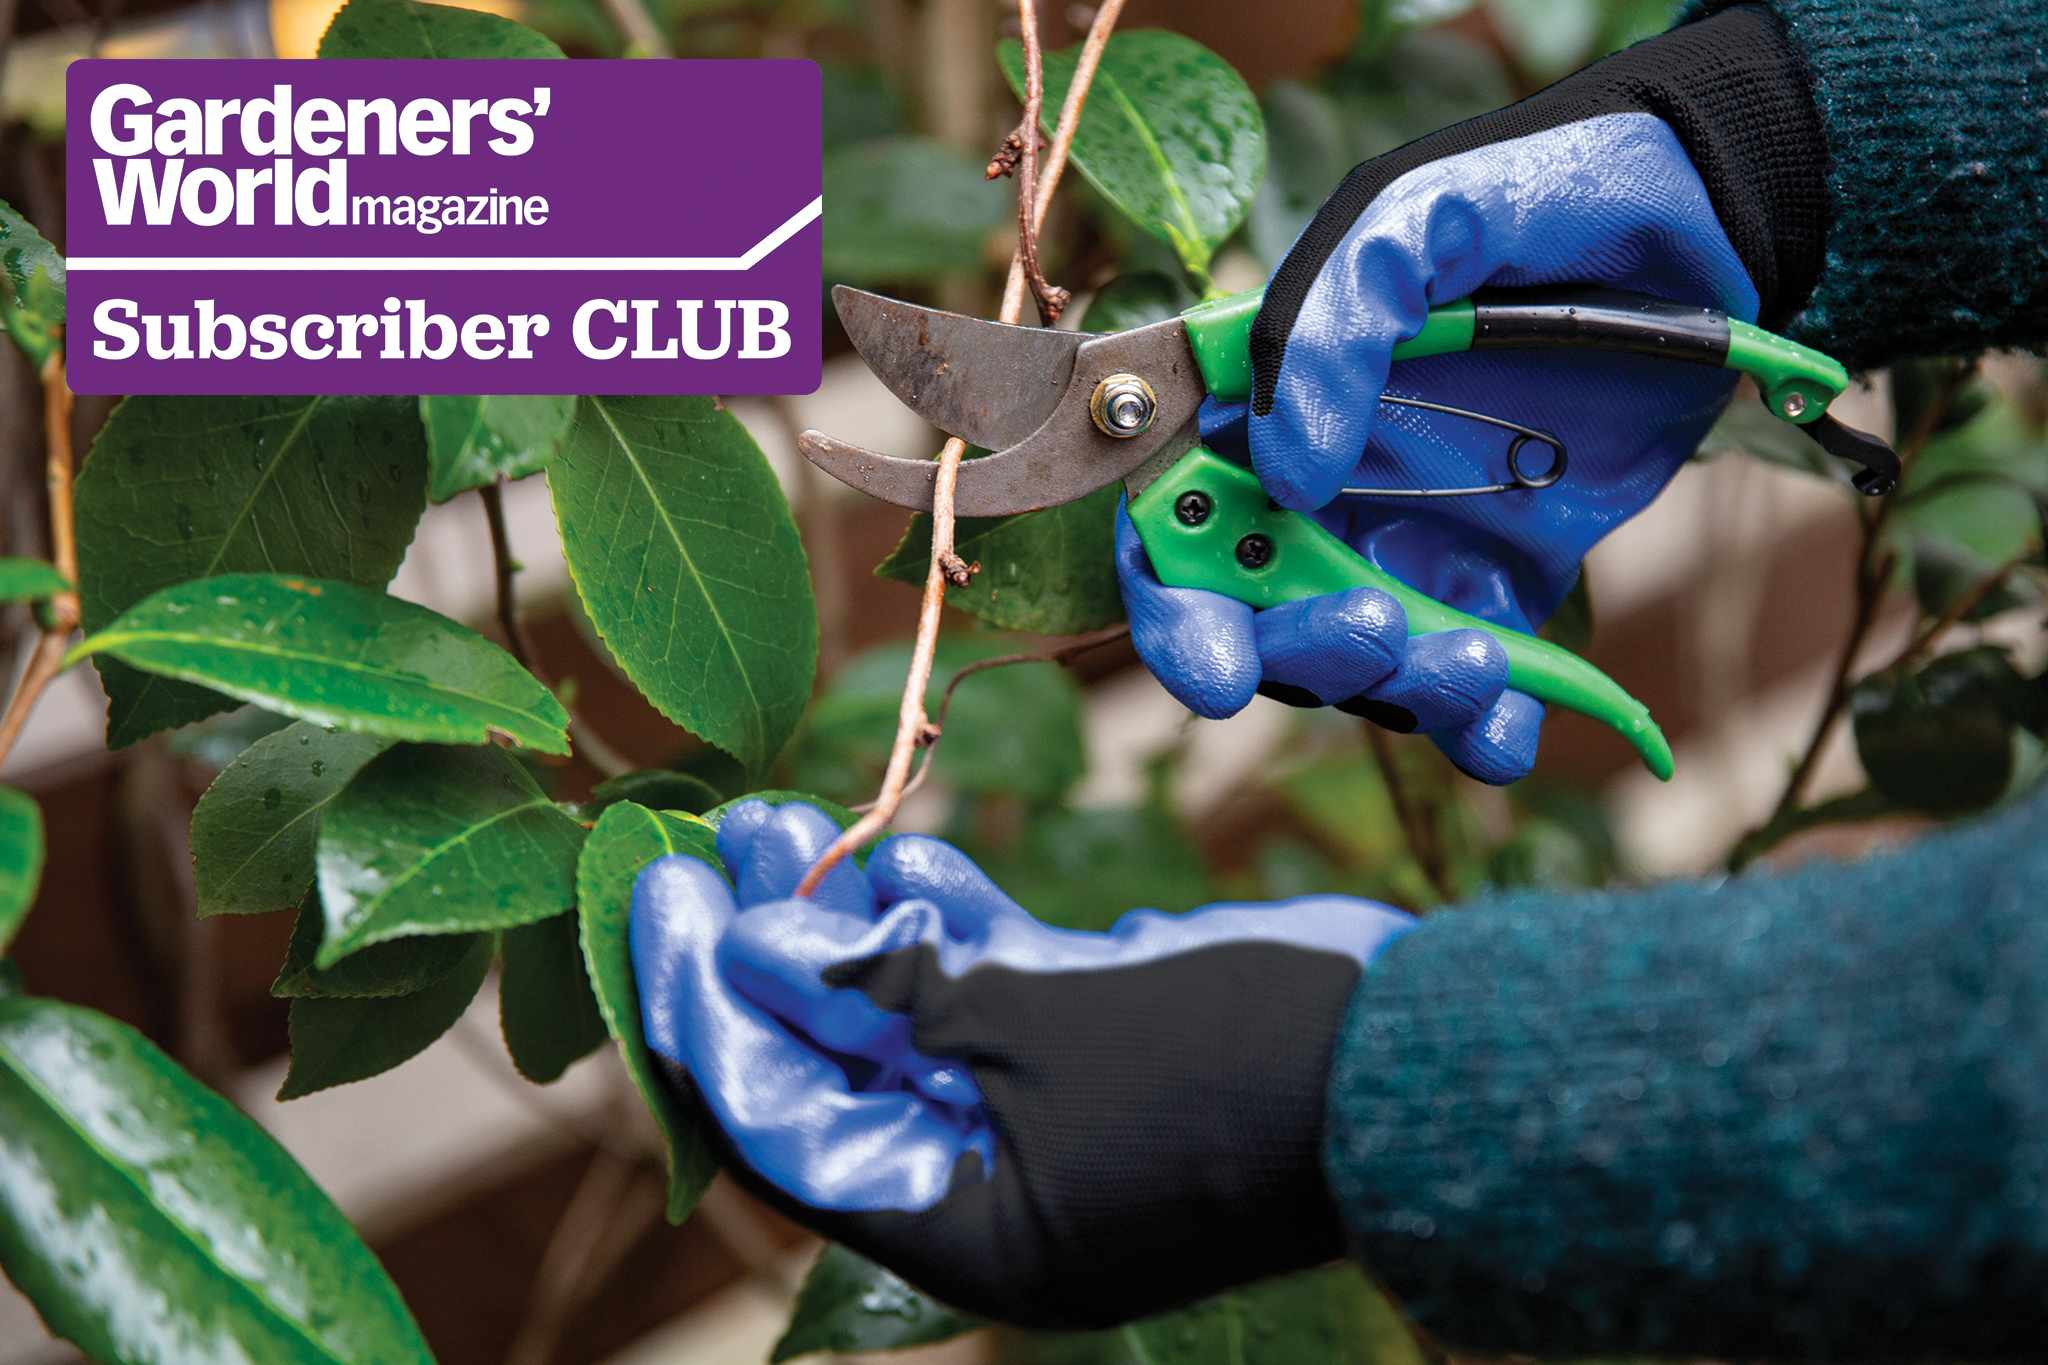 Subscriber Club: Win a pair of gardening gloves